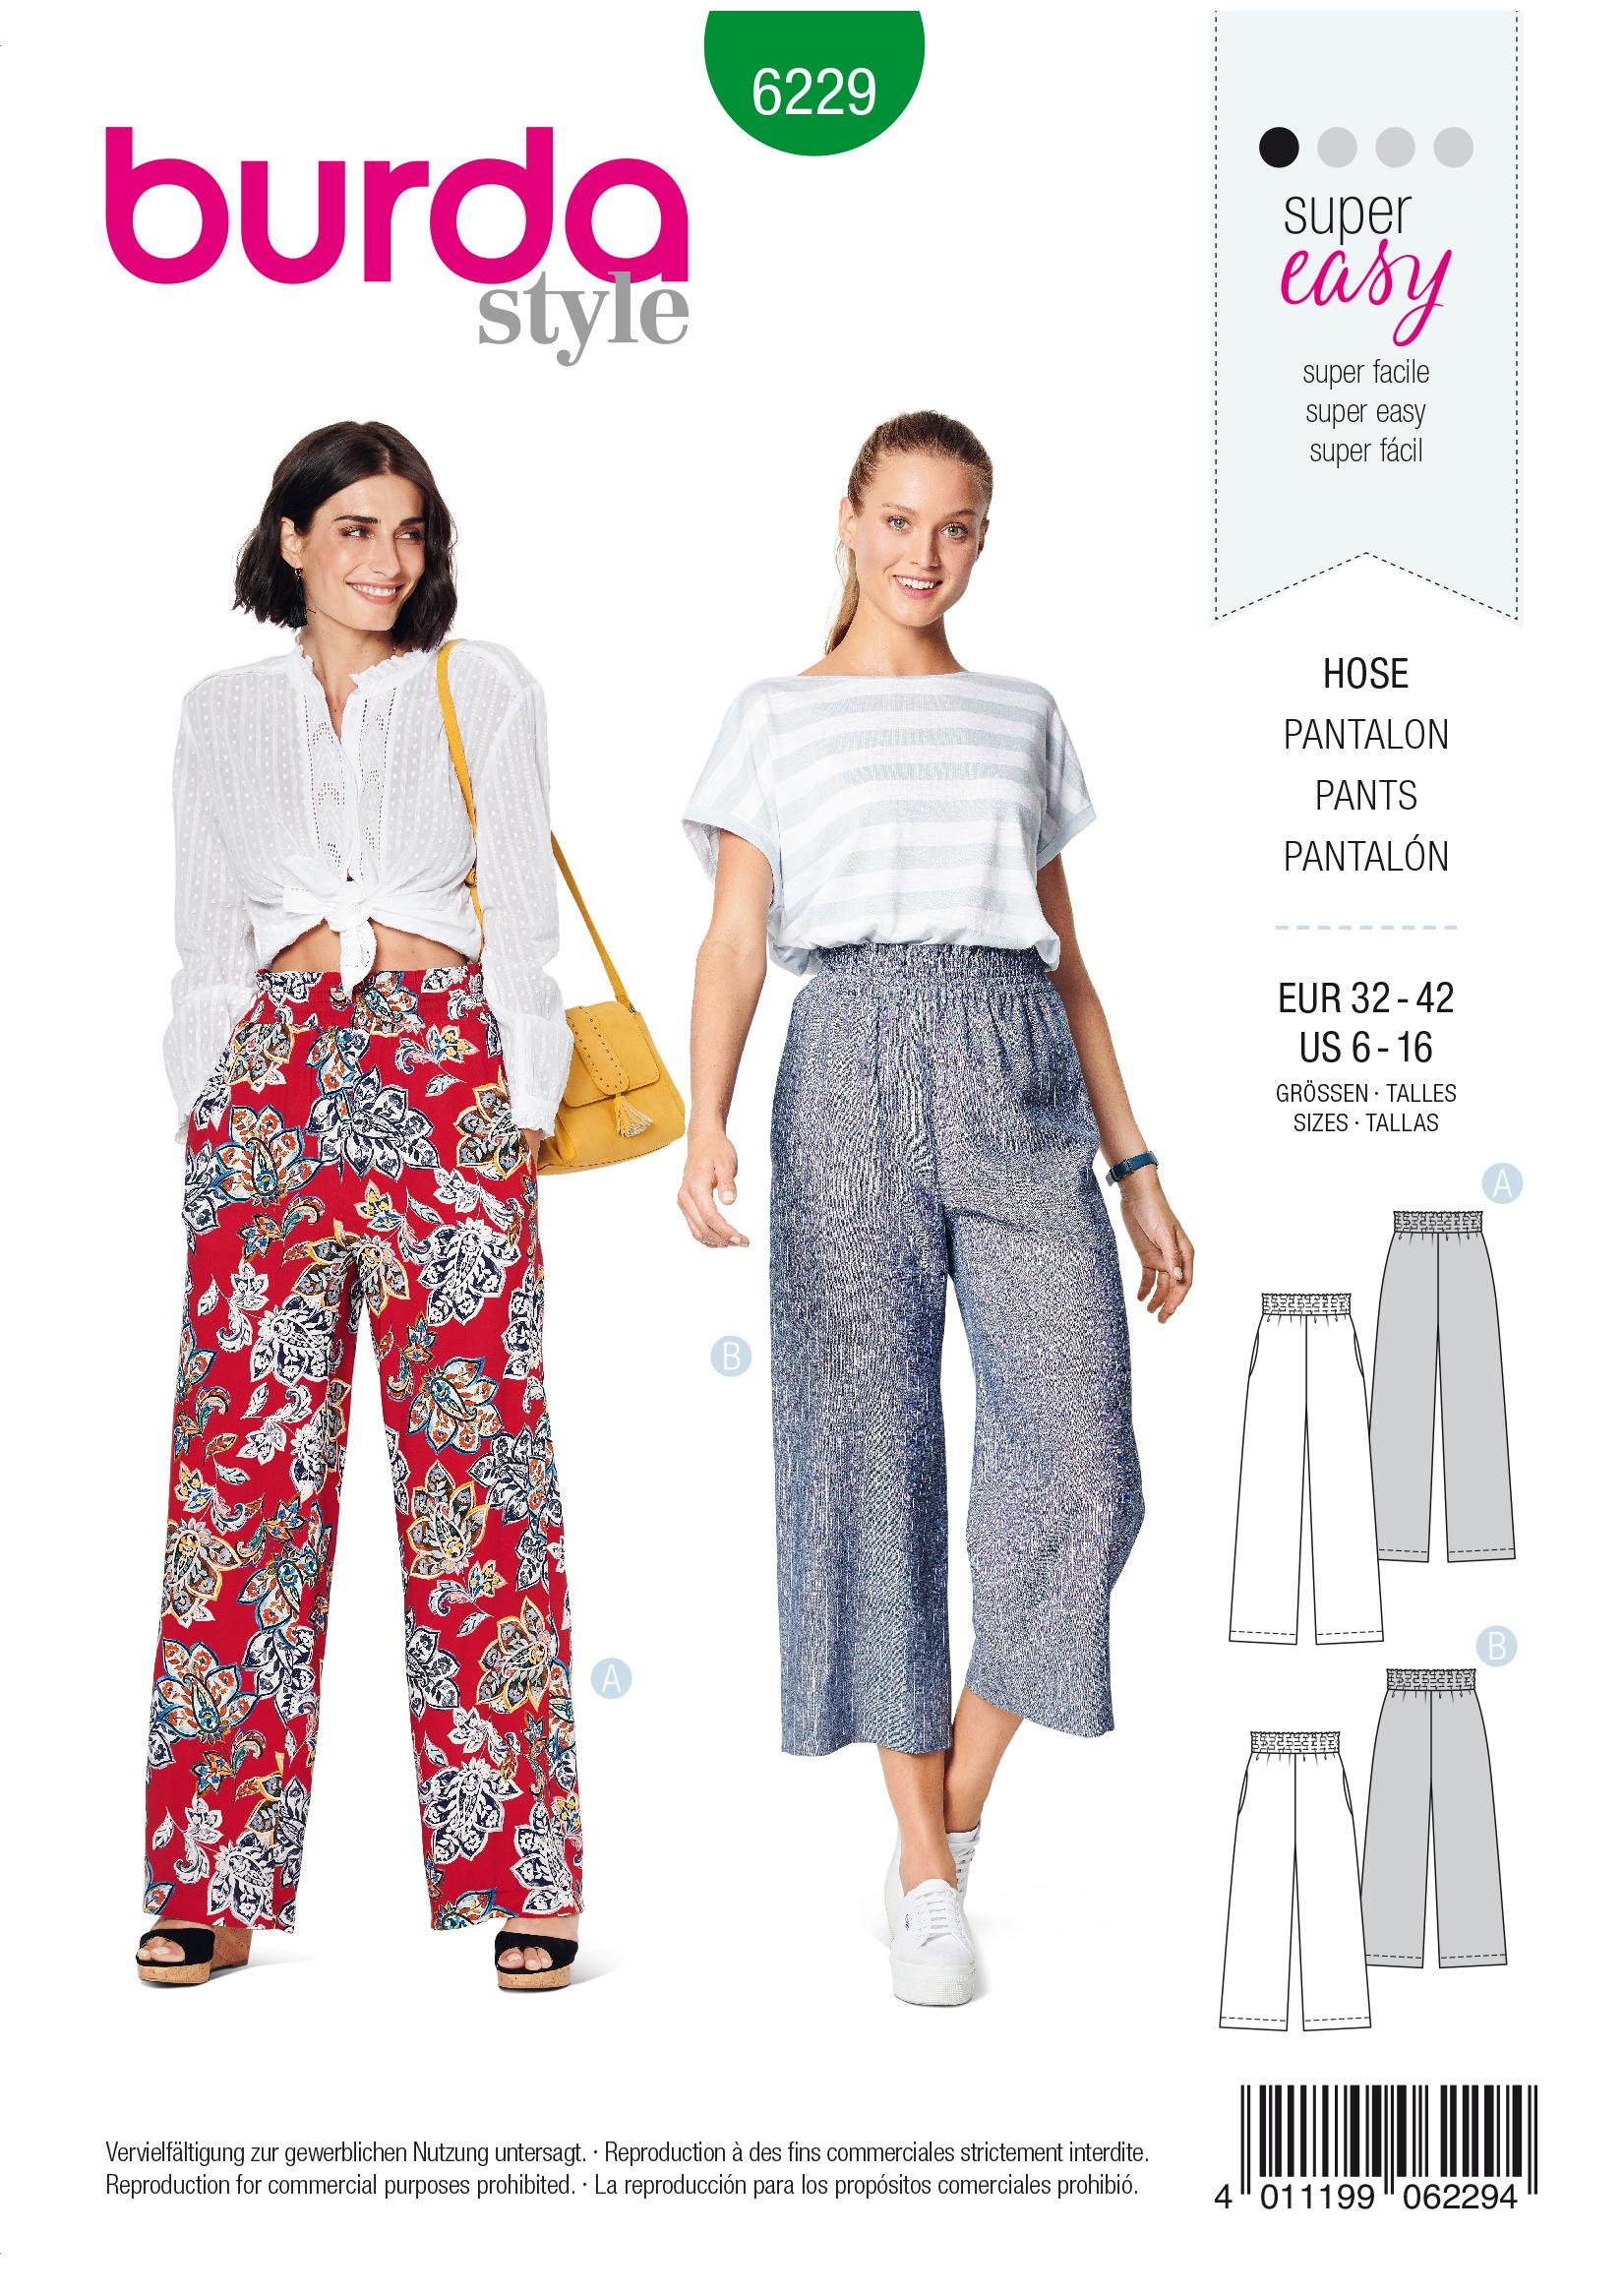 Burda B6229 Trousers/Pants with Elastic Waist with Pockets in Seams Sewing Pattern